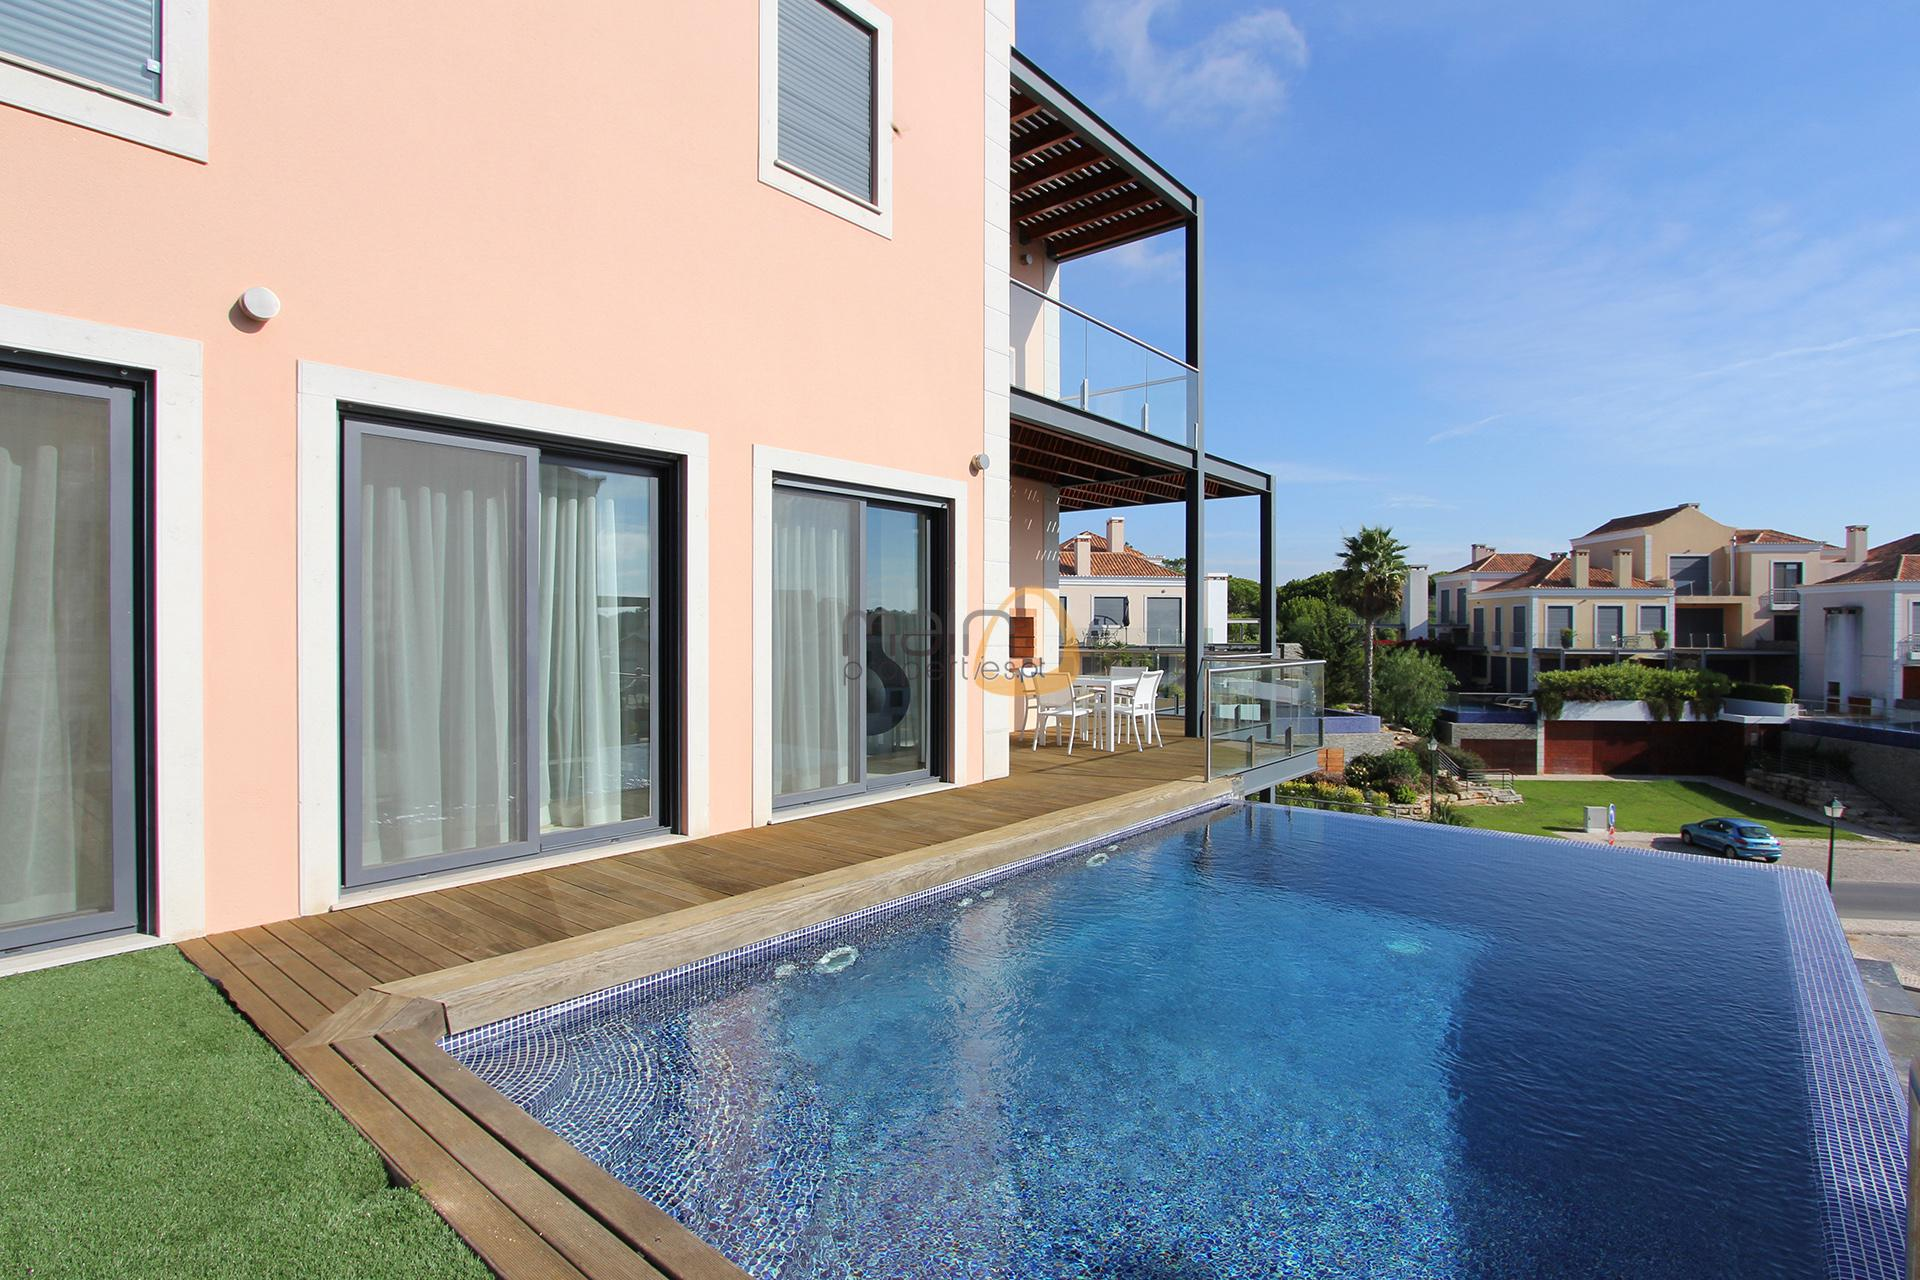 apartment-in-vale-do-lobo-algarve-golden-triangle-portugal-property-real-estate-mainproperties-mp136vdl-0